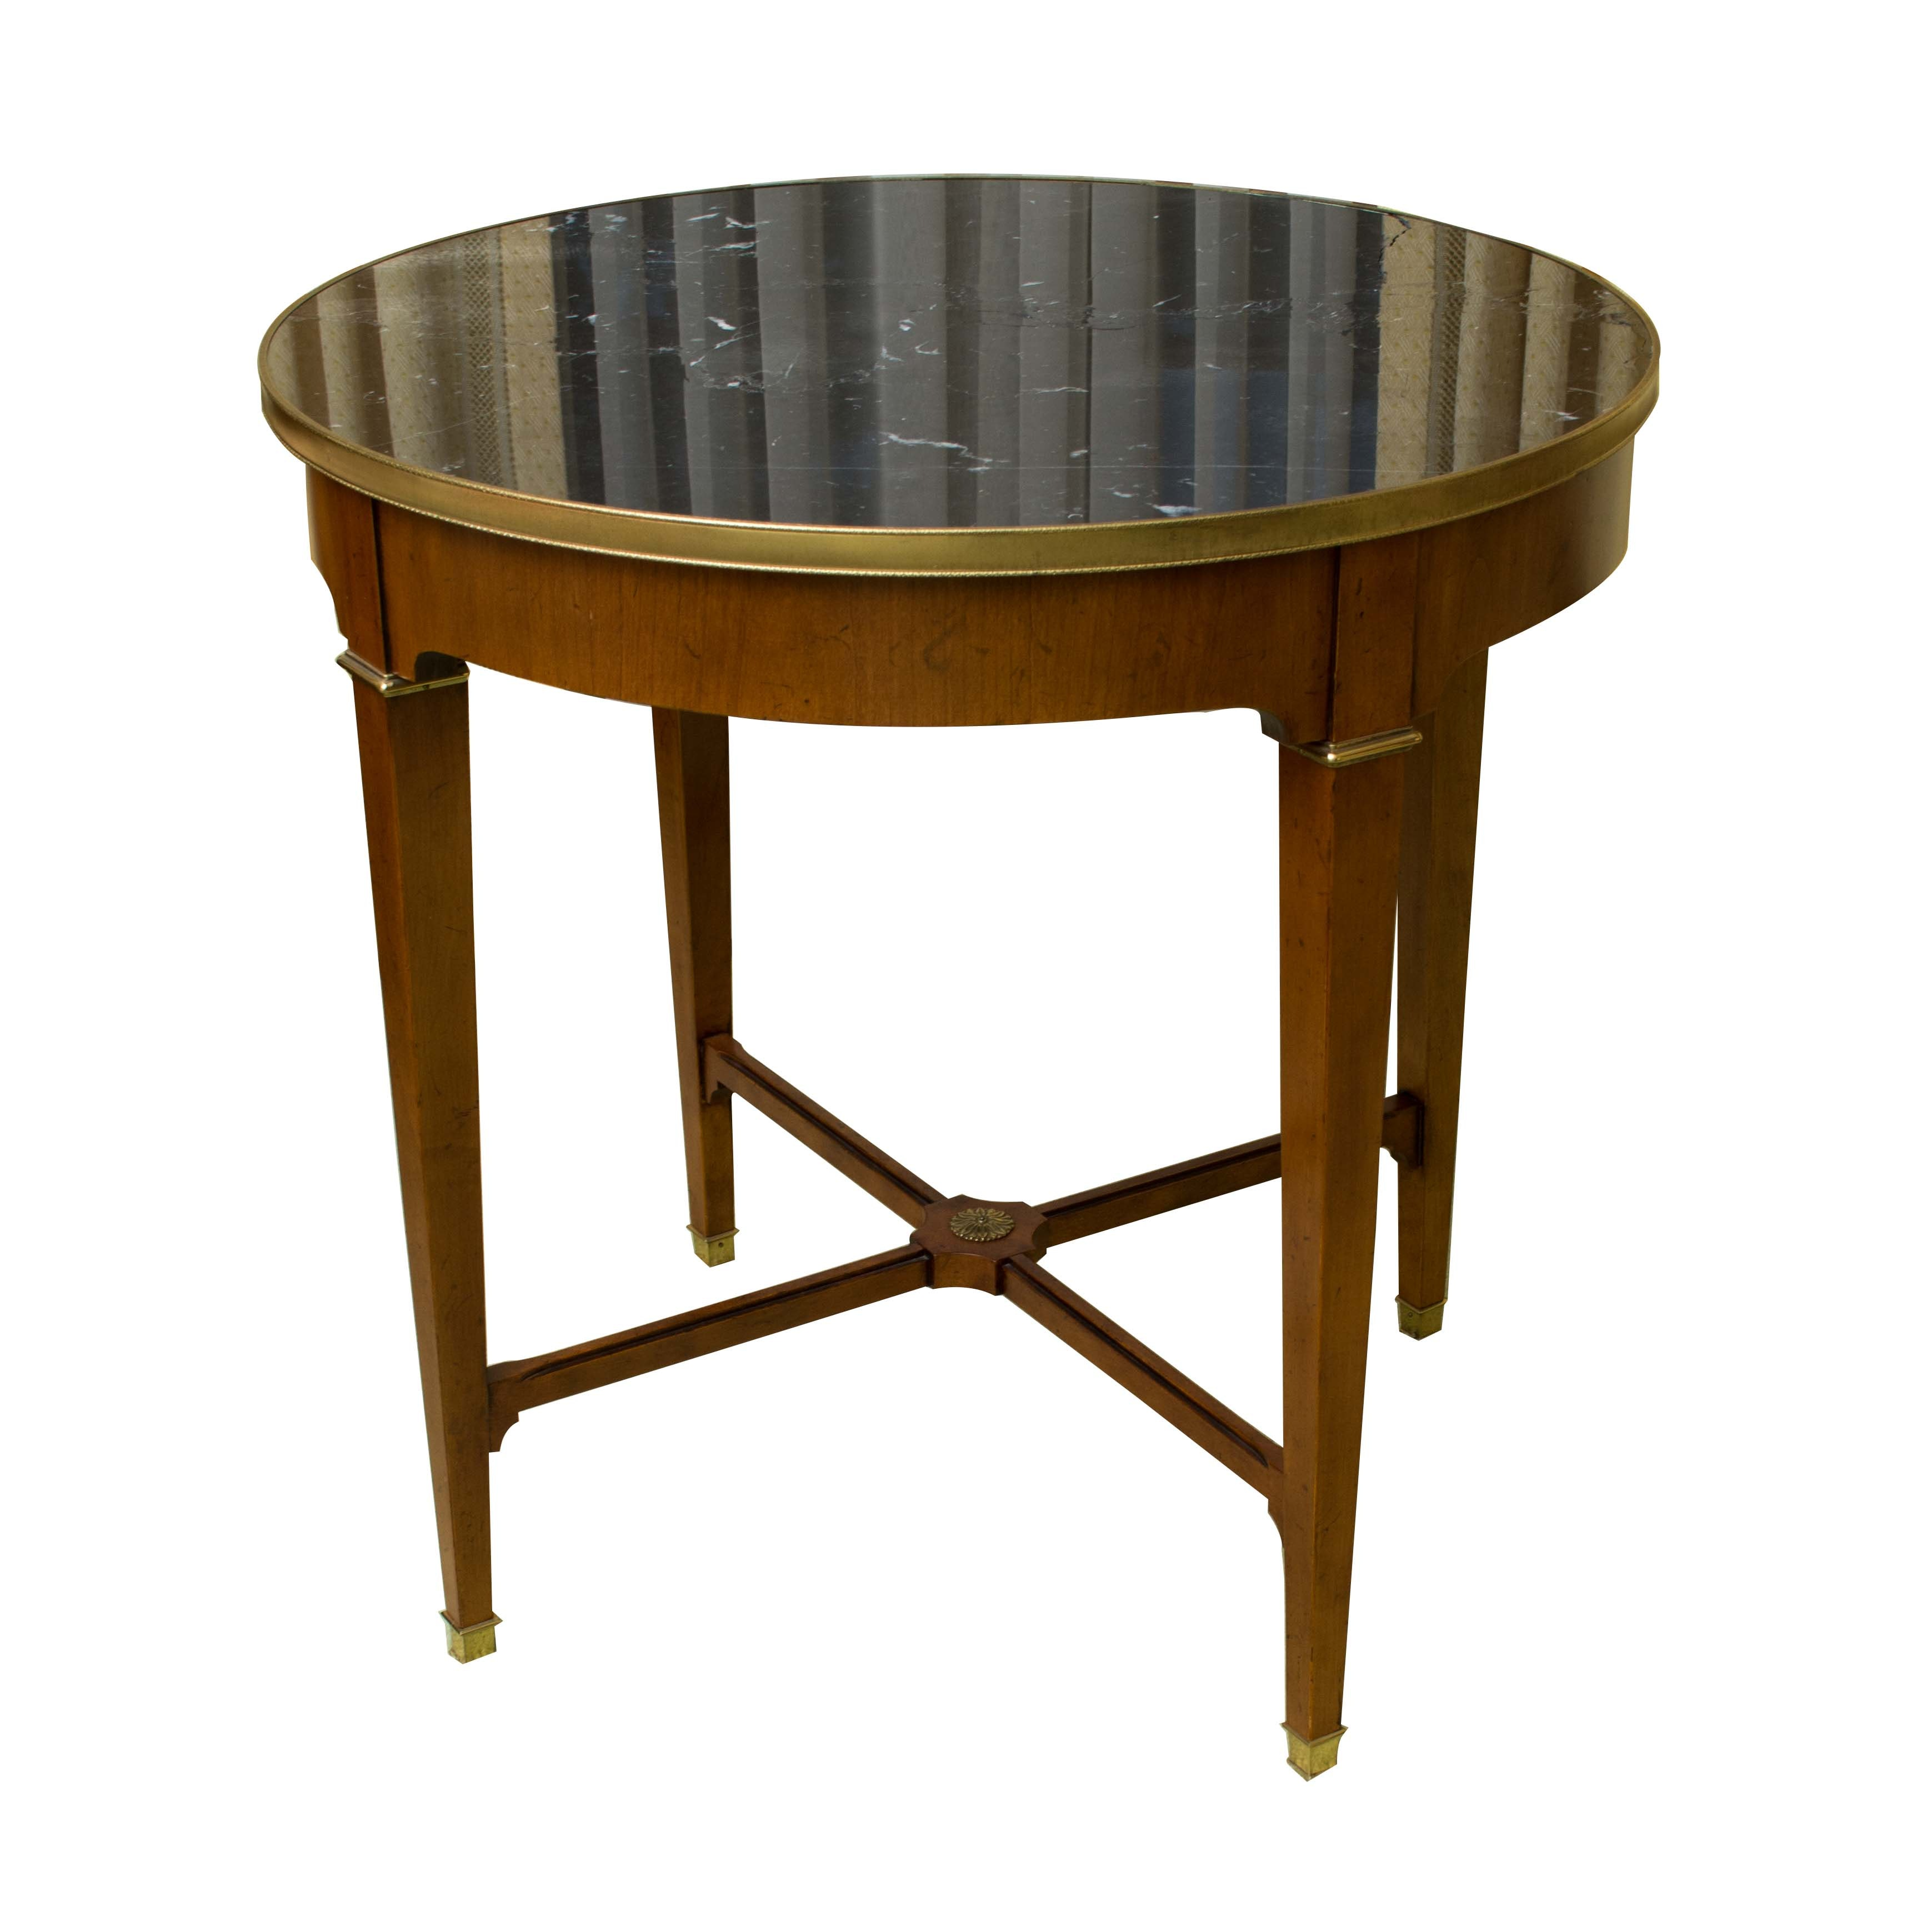 Directoire Style Marble Table by Baker Furniture